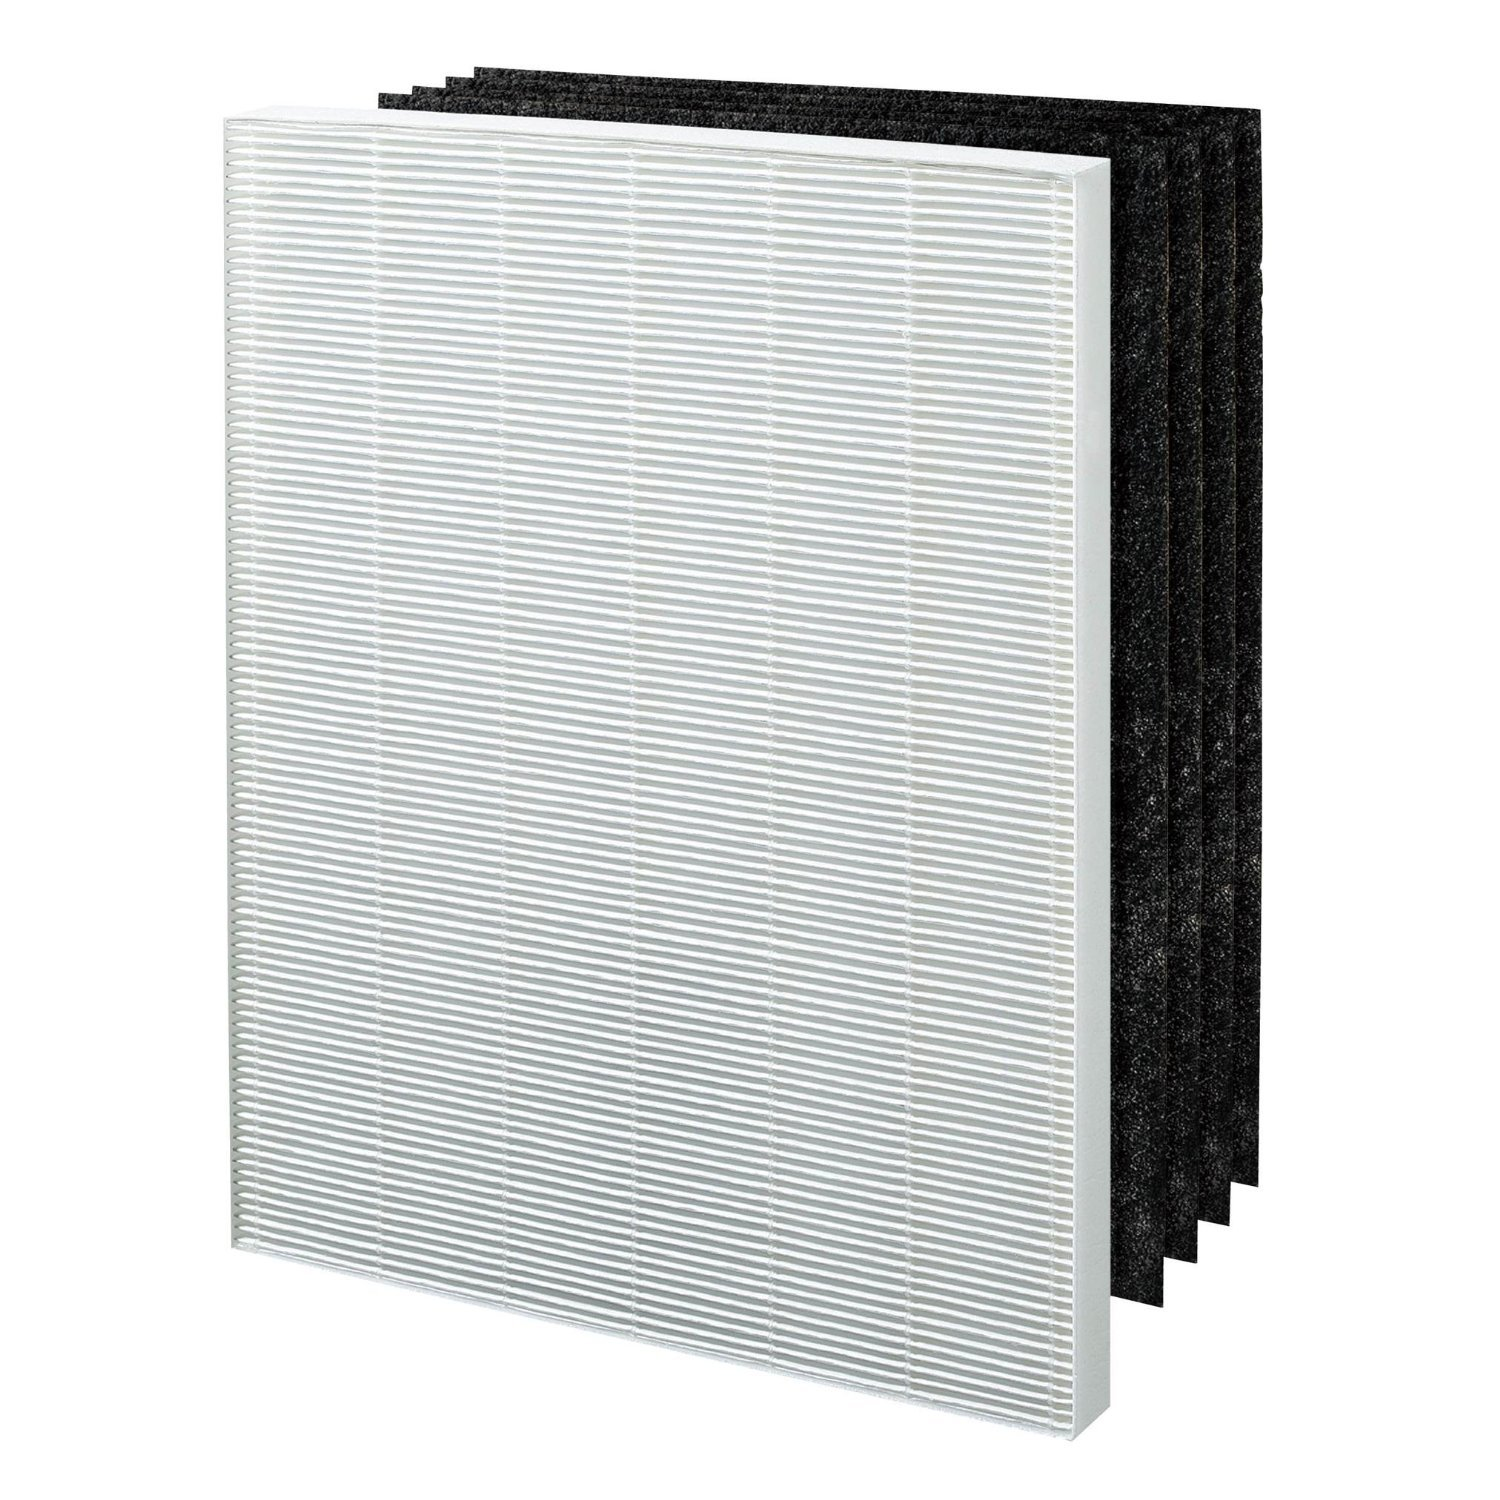 1 Fellowes HEPA Air Purifier Filter 4 Carbon Filters fits Fellowes AP-300PH Air Purifier - Compare #HF-300 - Designed & Engineered By Vacuum Savings